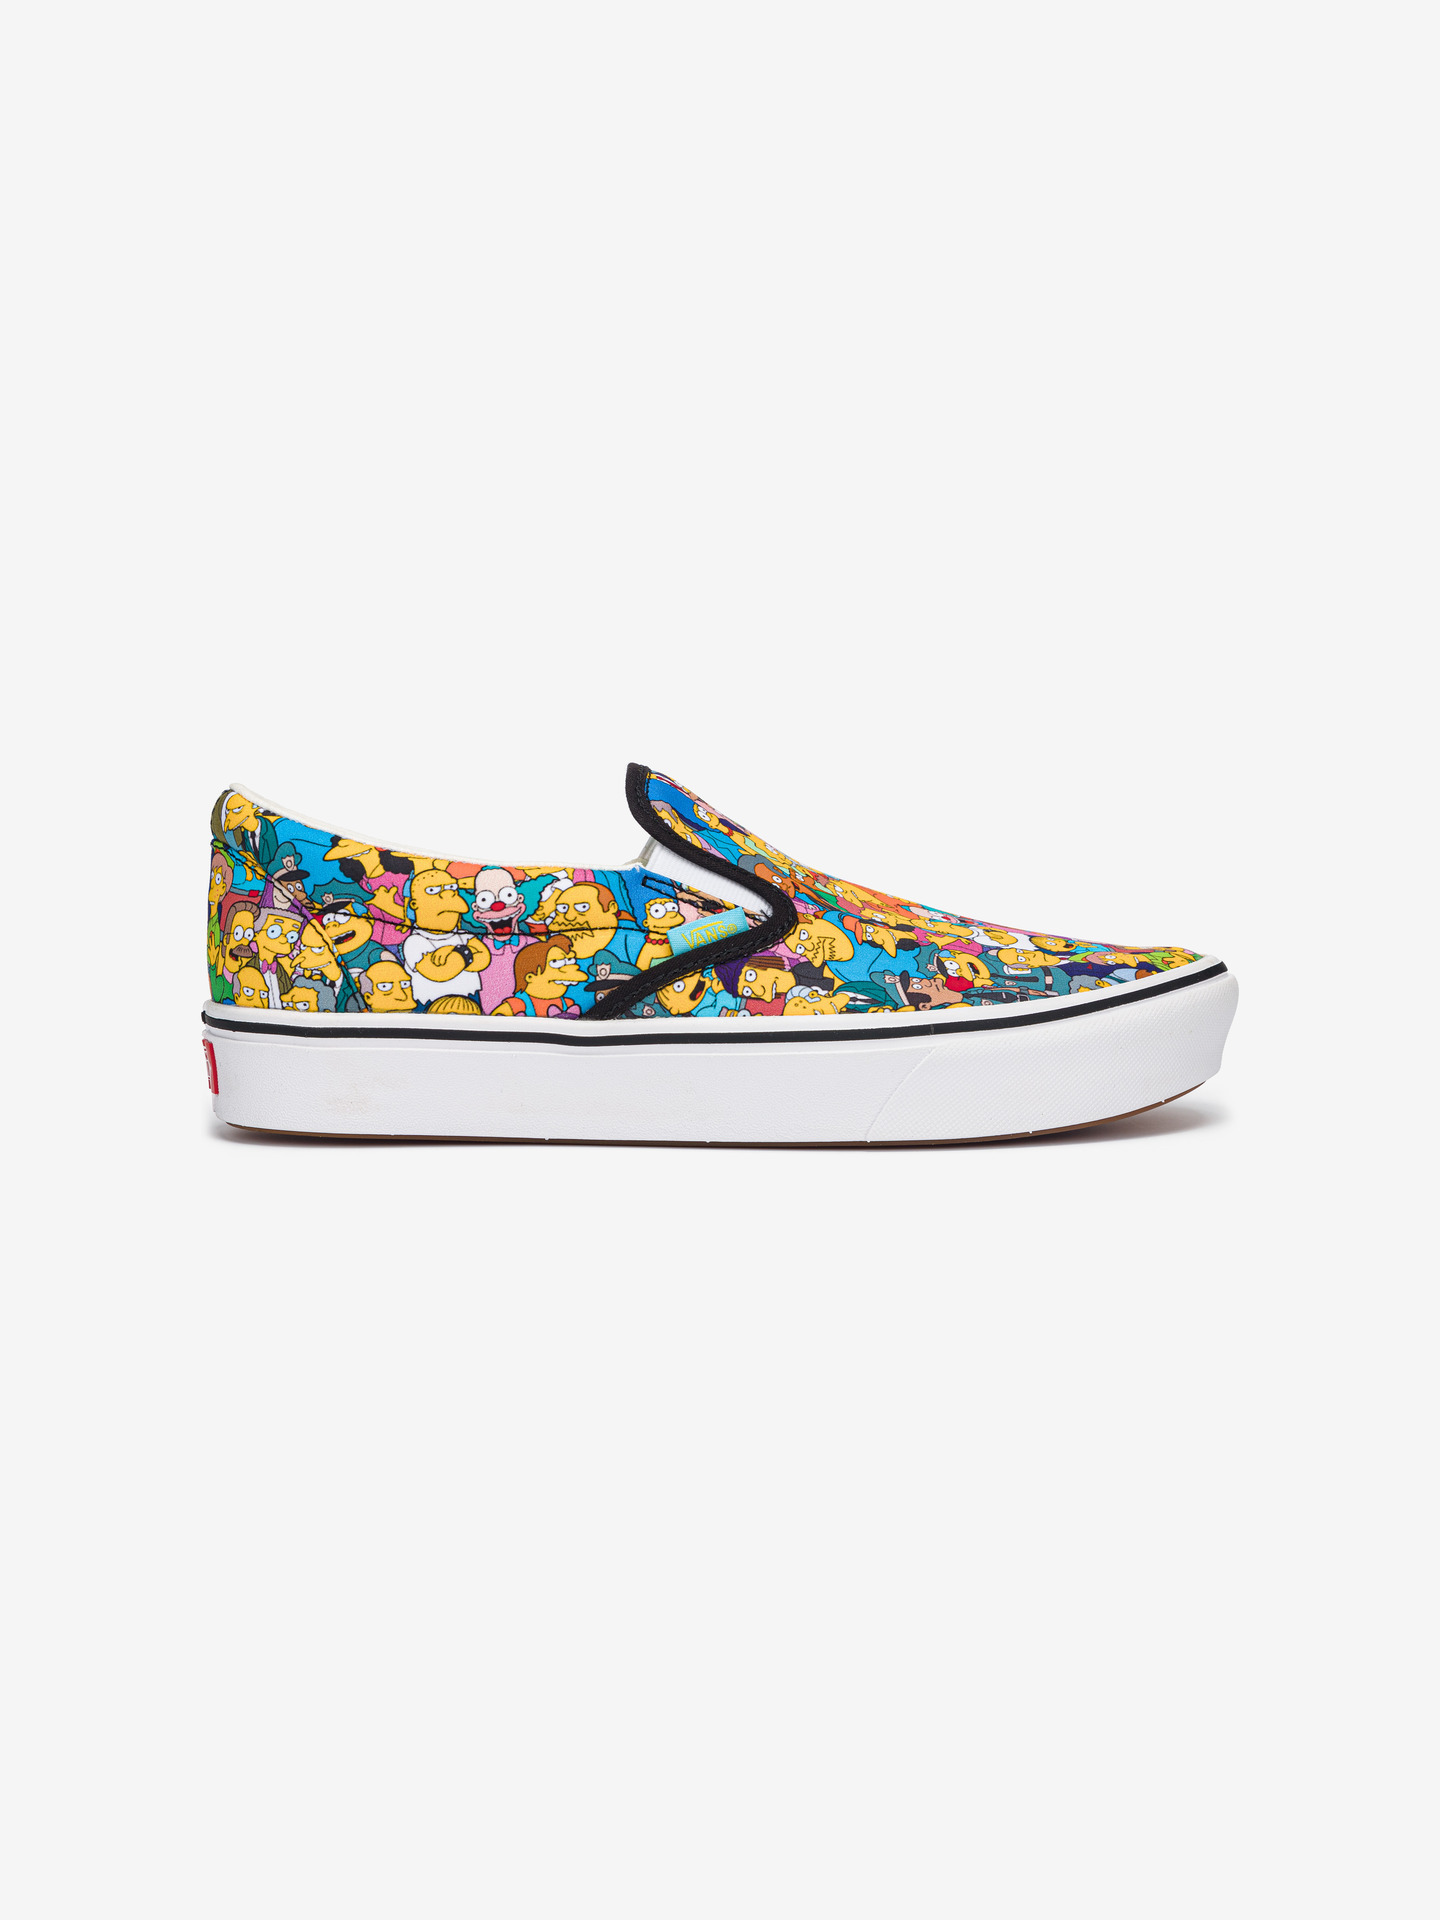 The Simpsons Comfycush Springfield Slip On Vans (1)